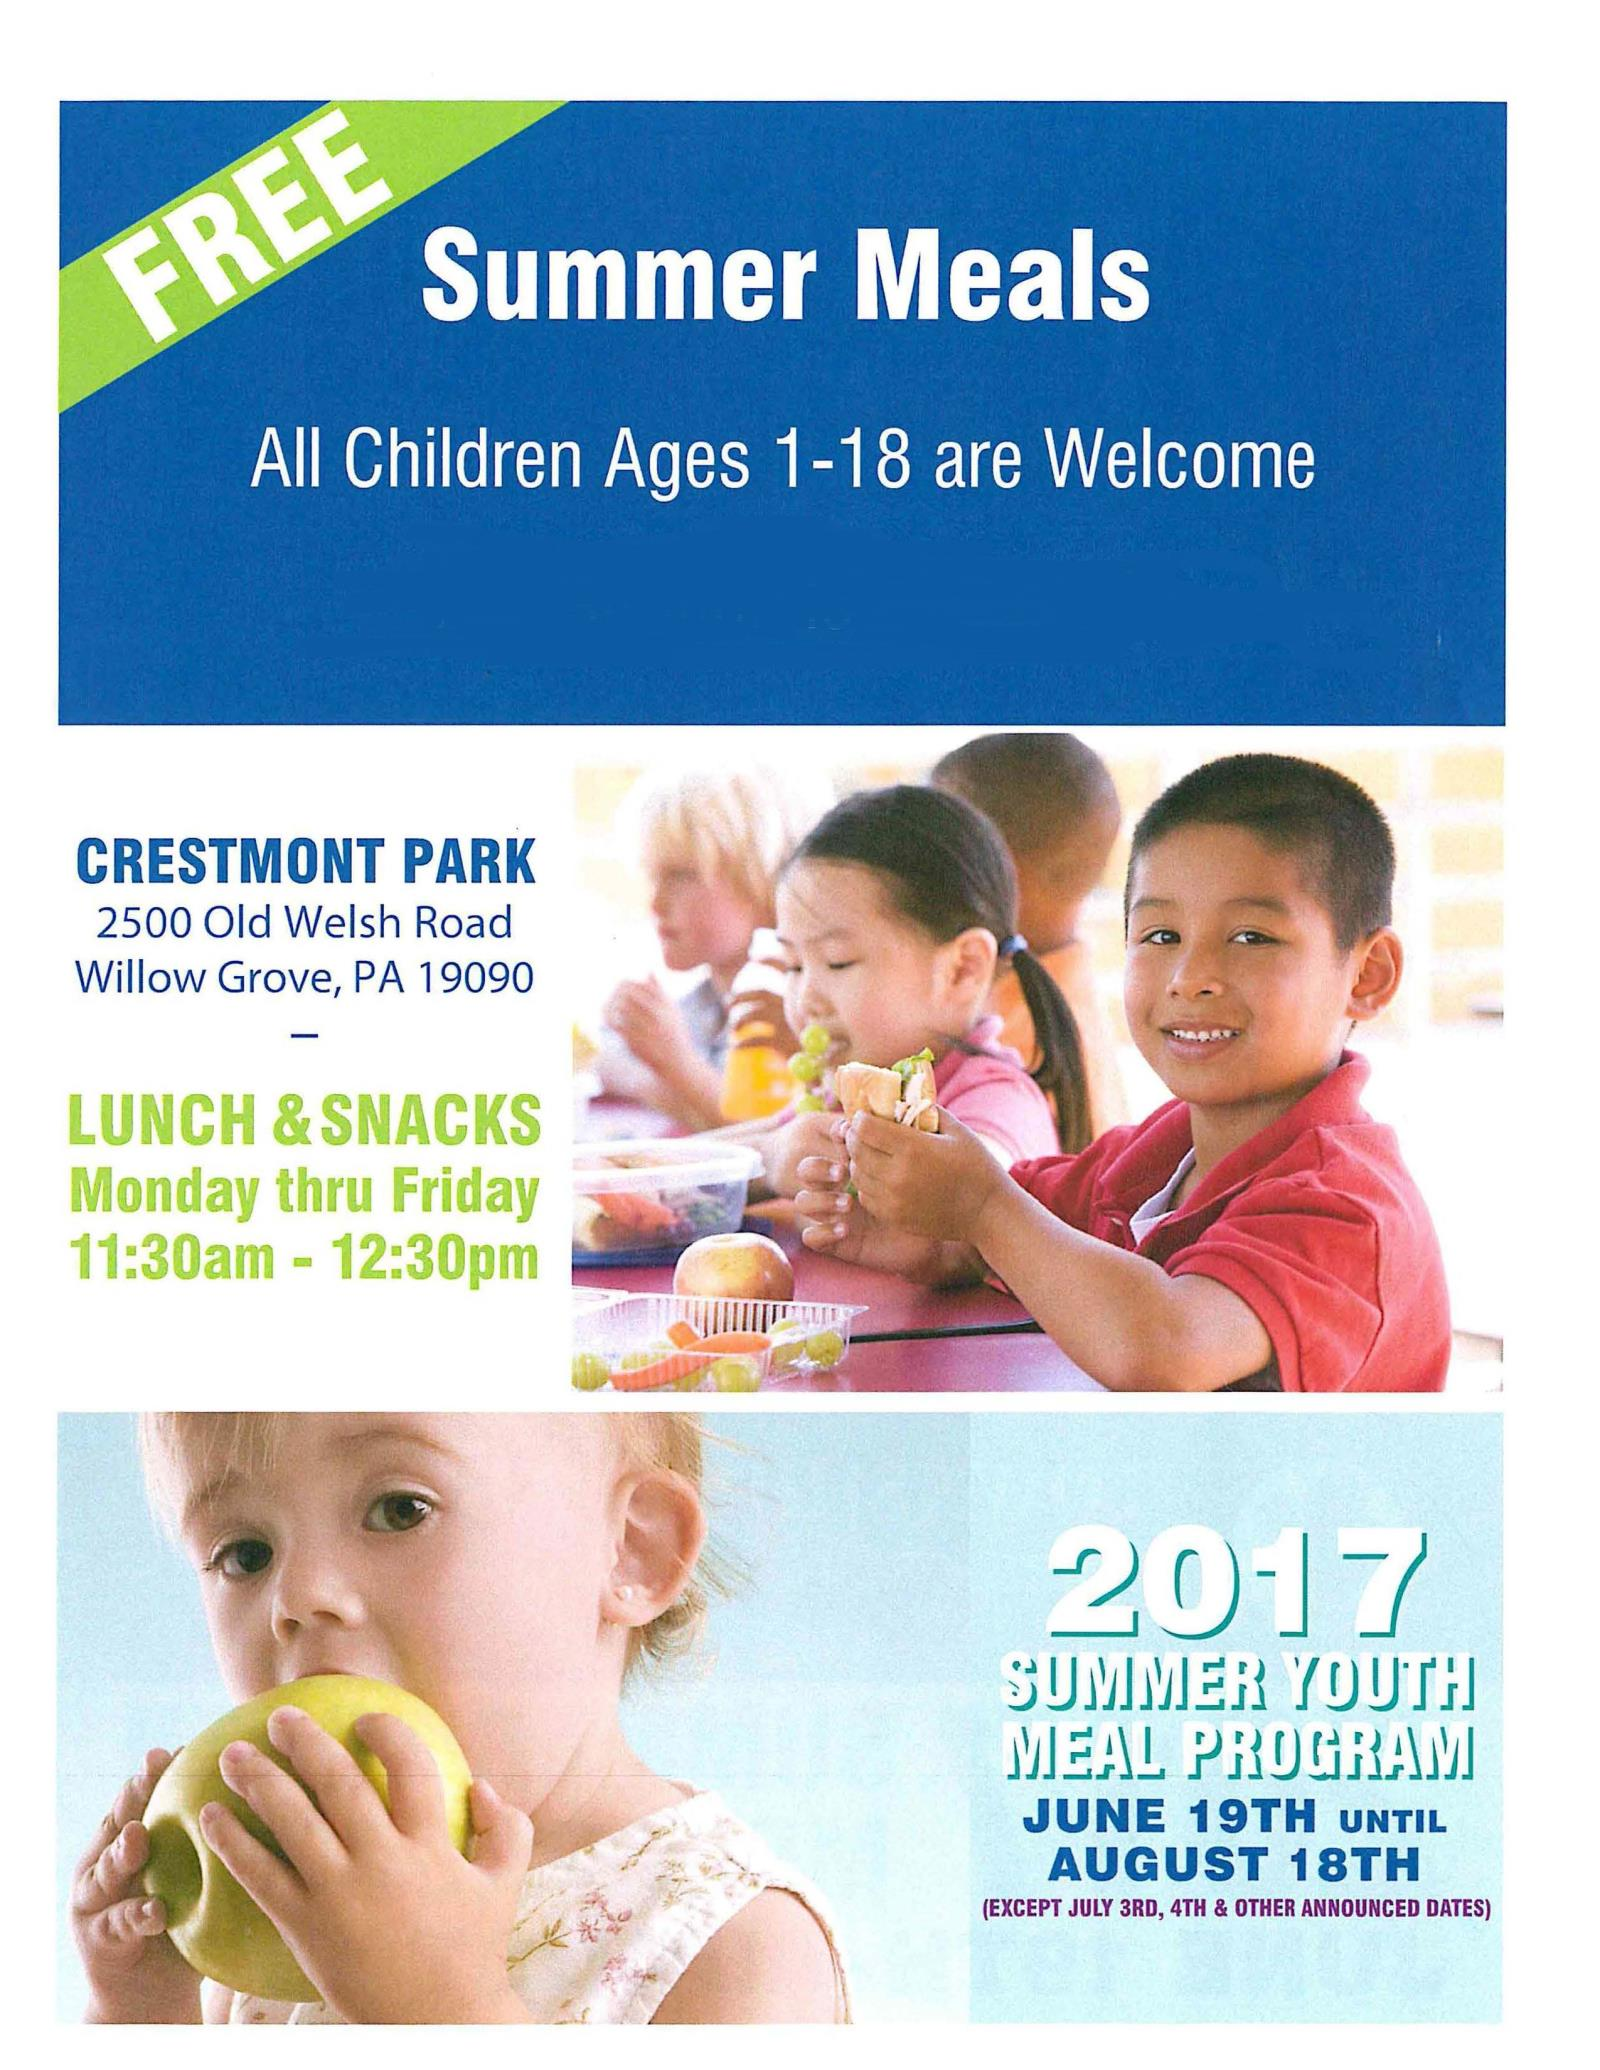 SUMMER MEALS FLYER corrected (002)_Page_1